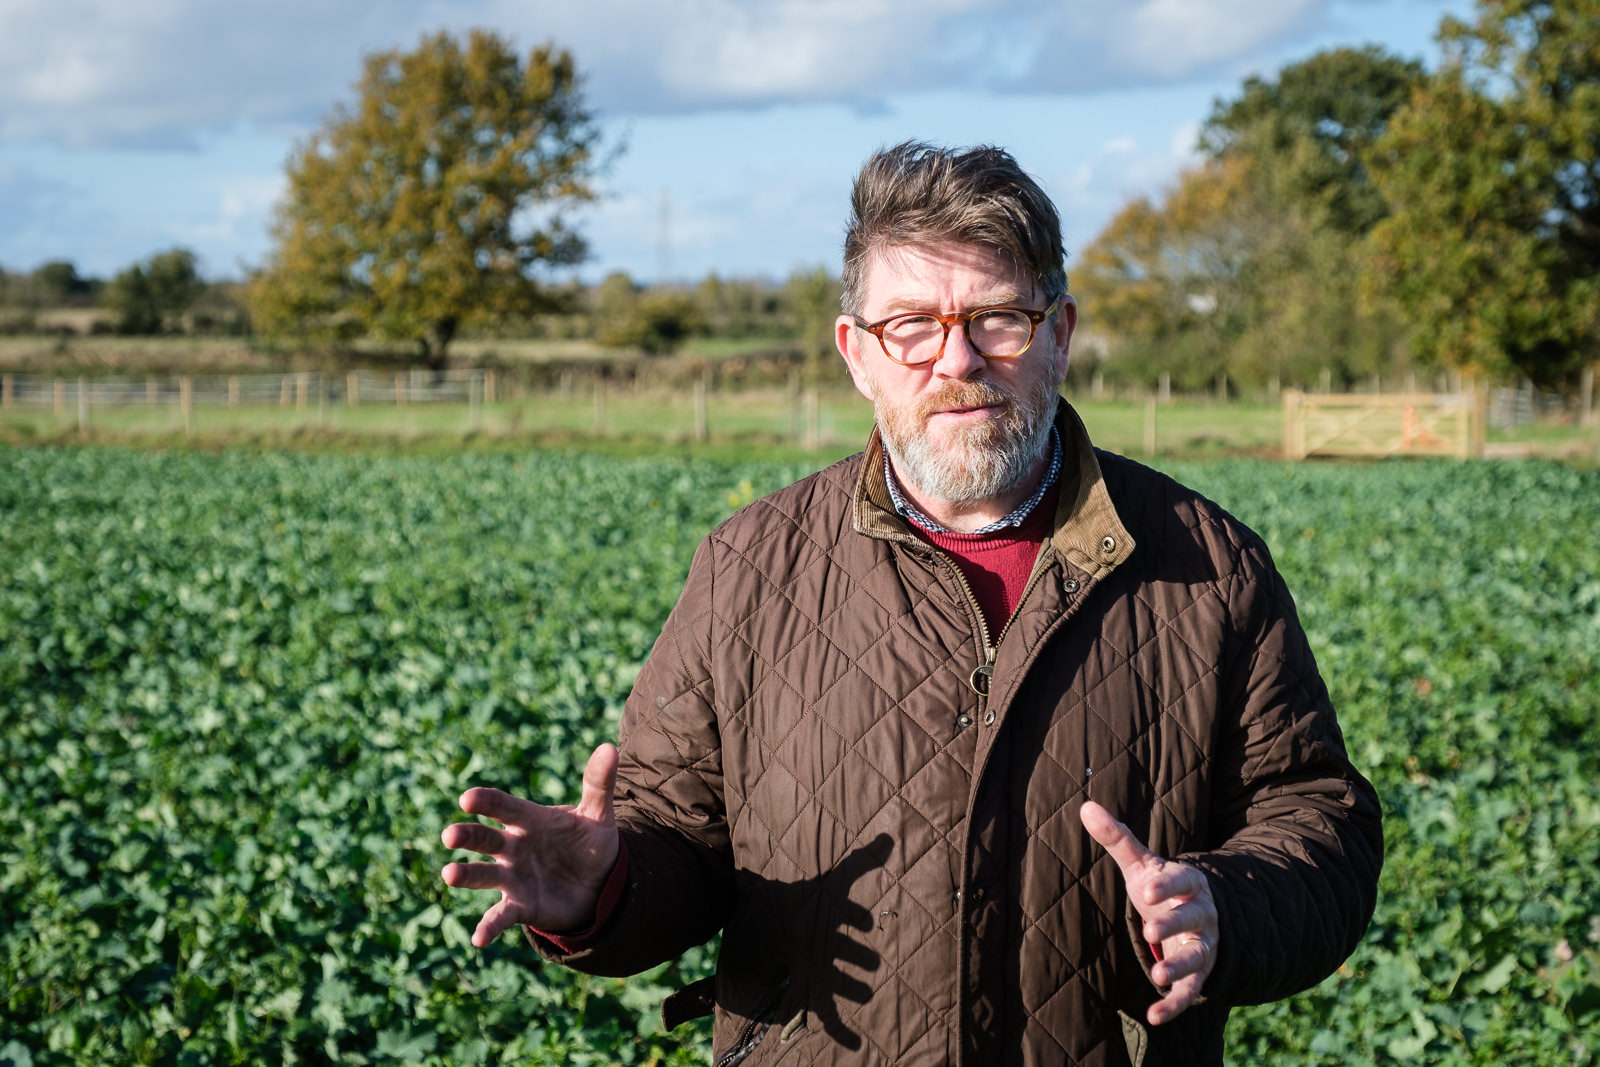 Portrait of Tim Fussell in a rapeseed field in rural Wiltshire